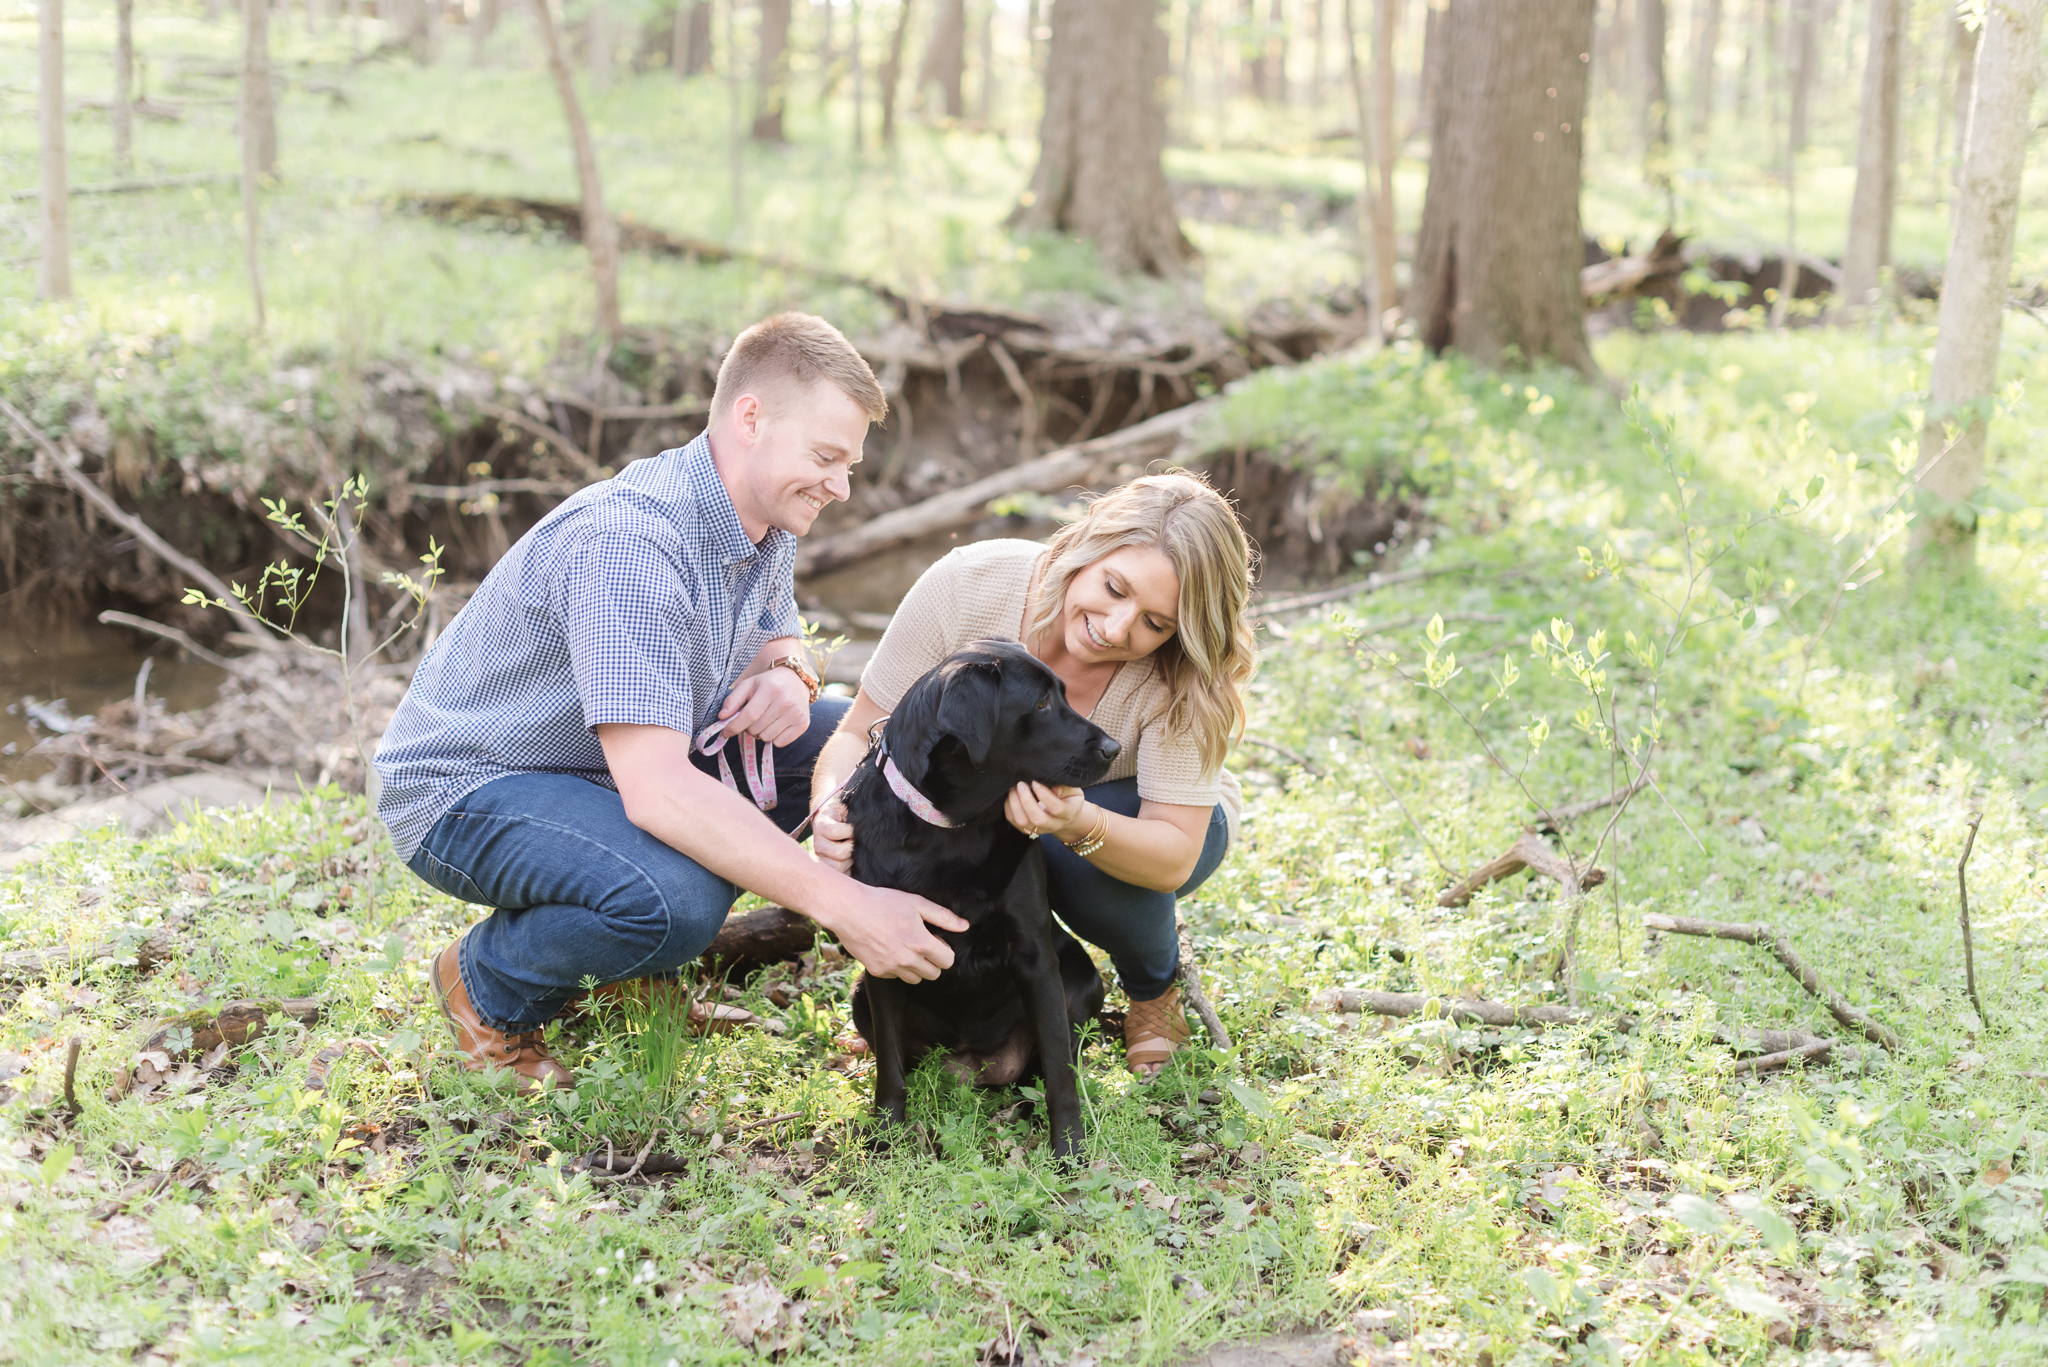 Richie Woods Nature Preserve and Mustard Seed Gardens Engagement Session Wedding Photos-19.jpg